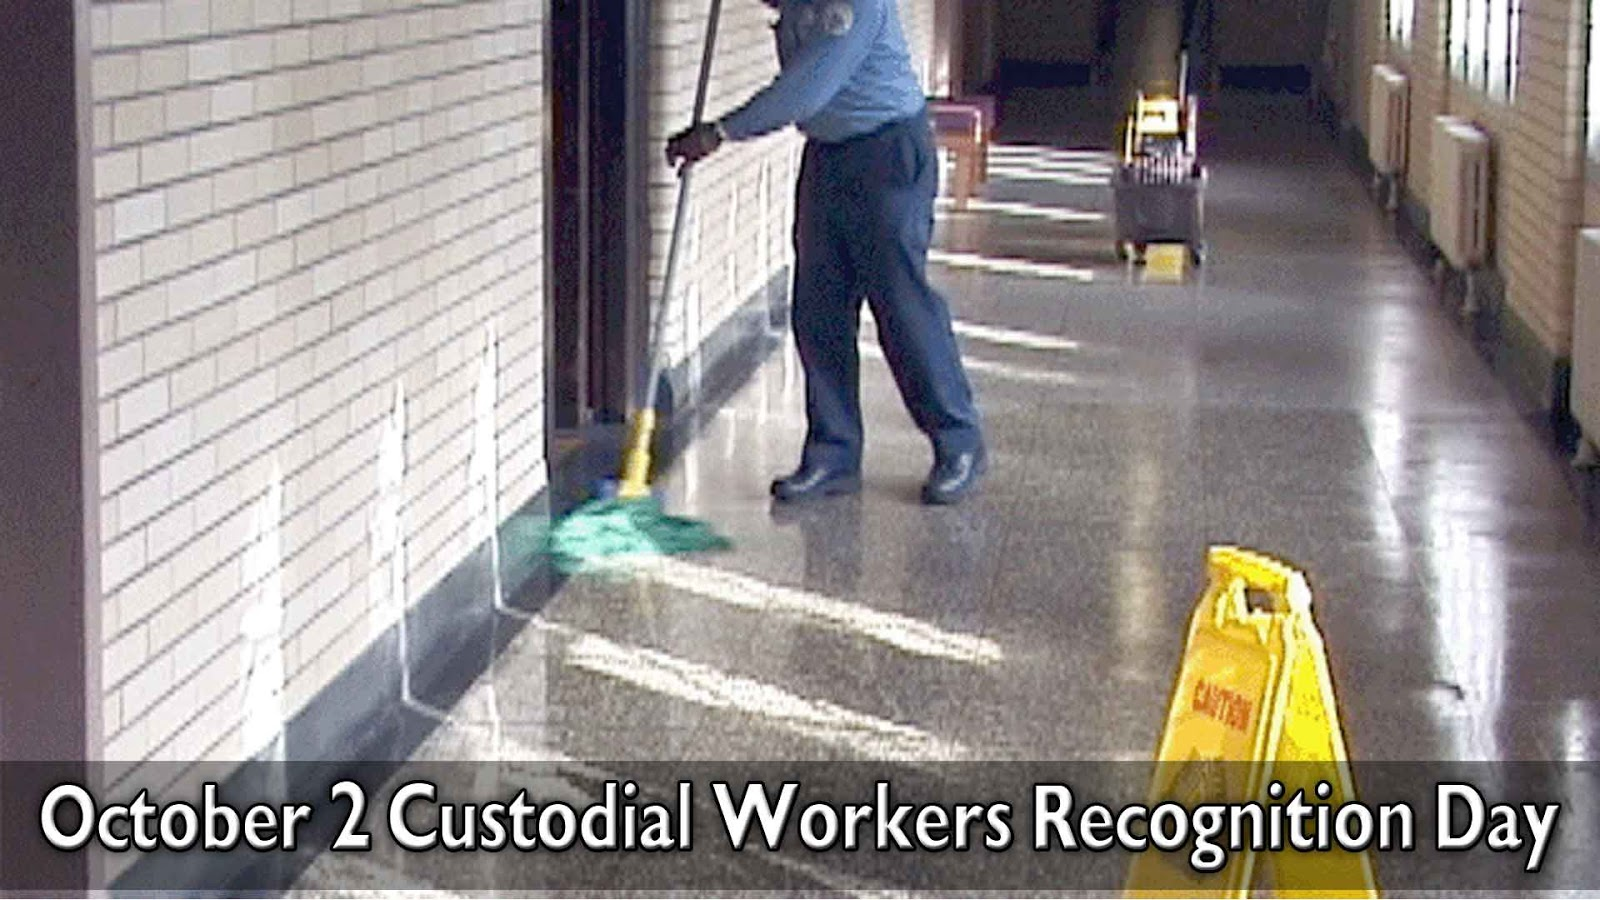 2 custodial workers recognition day today day info 2 custodial workers recognition day